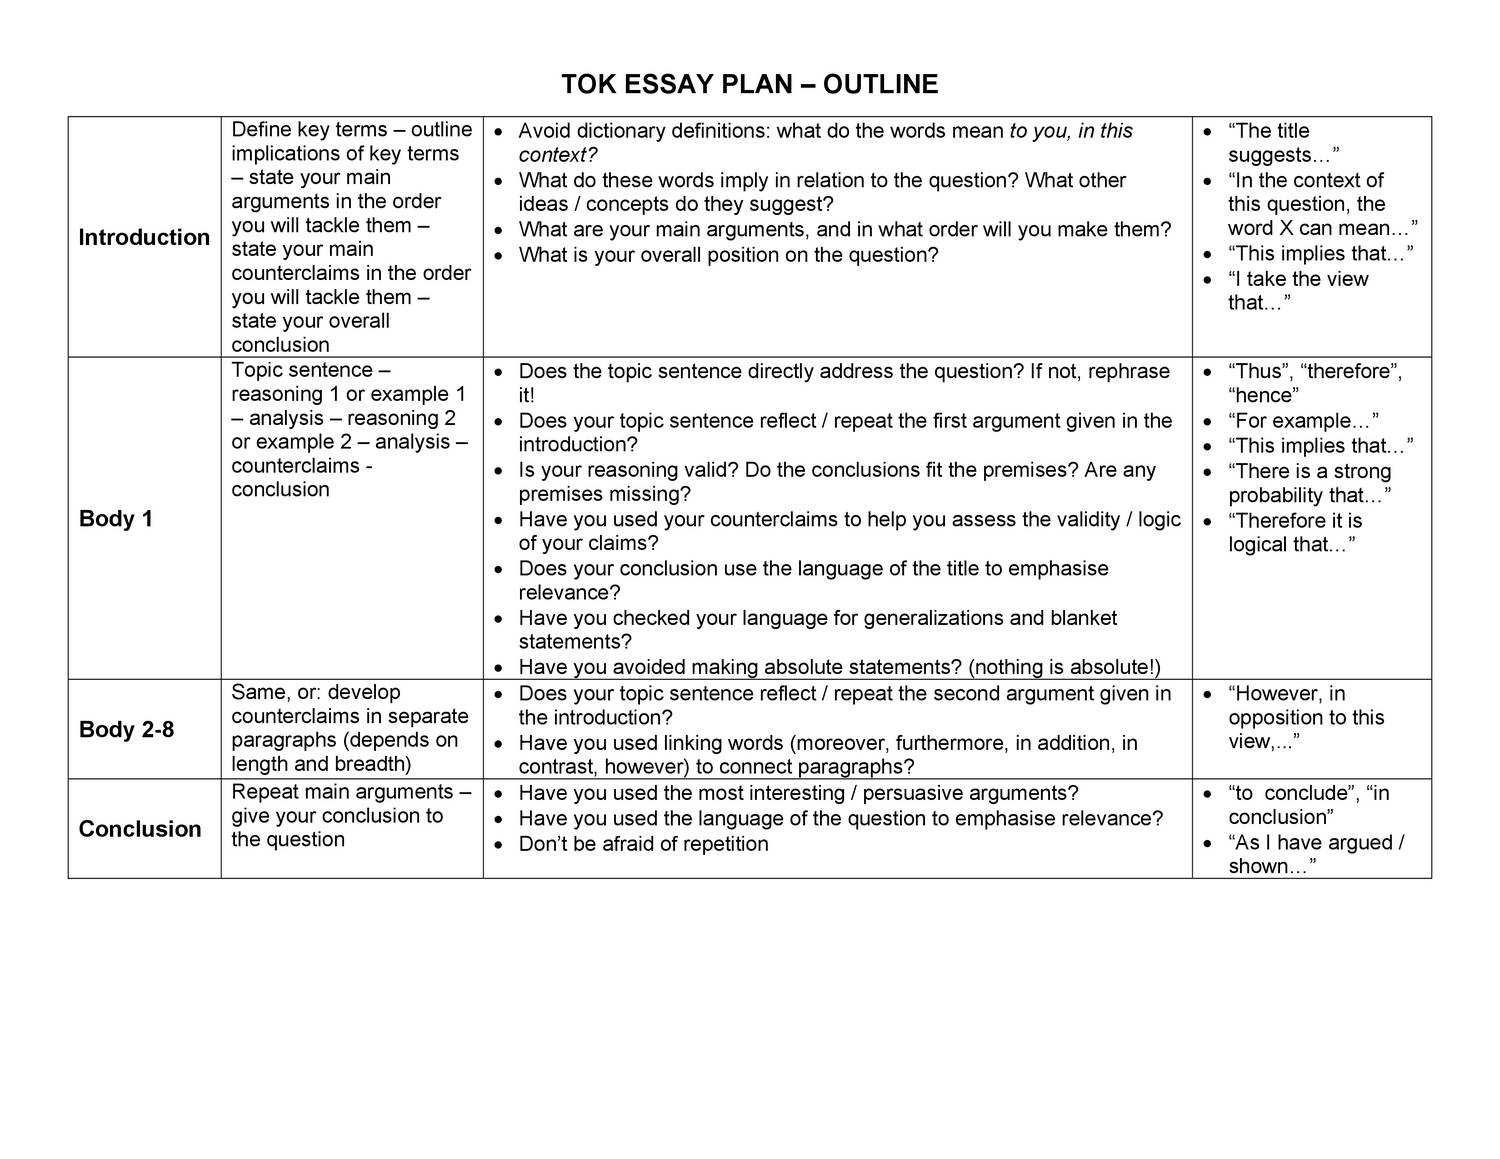 001 Tok Essay Plan Example Unforgettable Outline 2018 Pdf Full